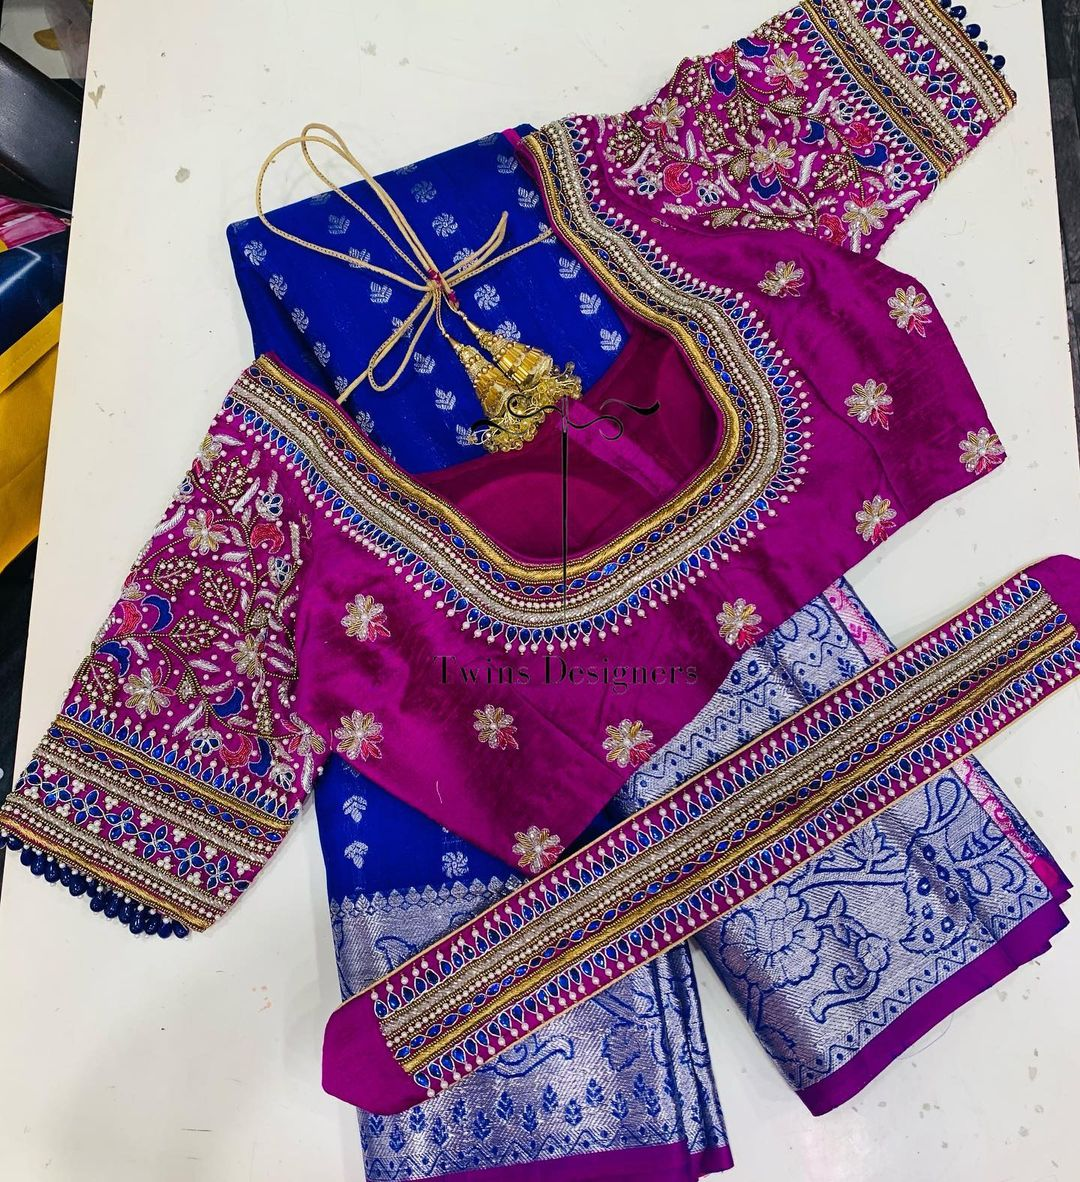 Stunning blue color designer blouse for kanchi pattu saree with floral design hand embroidery classy maggam work.  2021-05-16